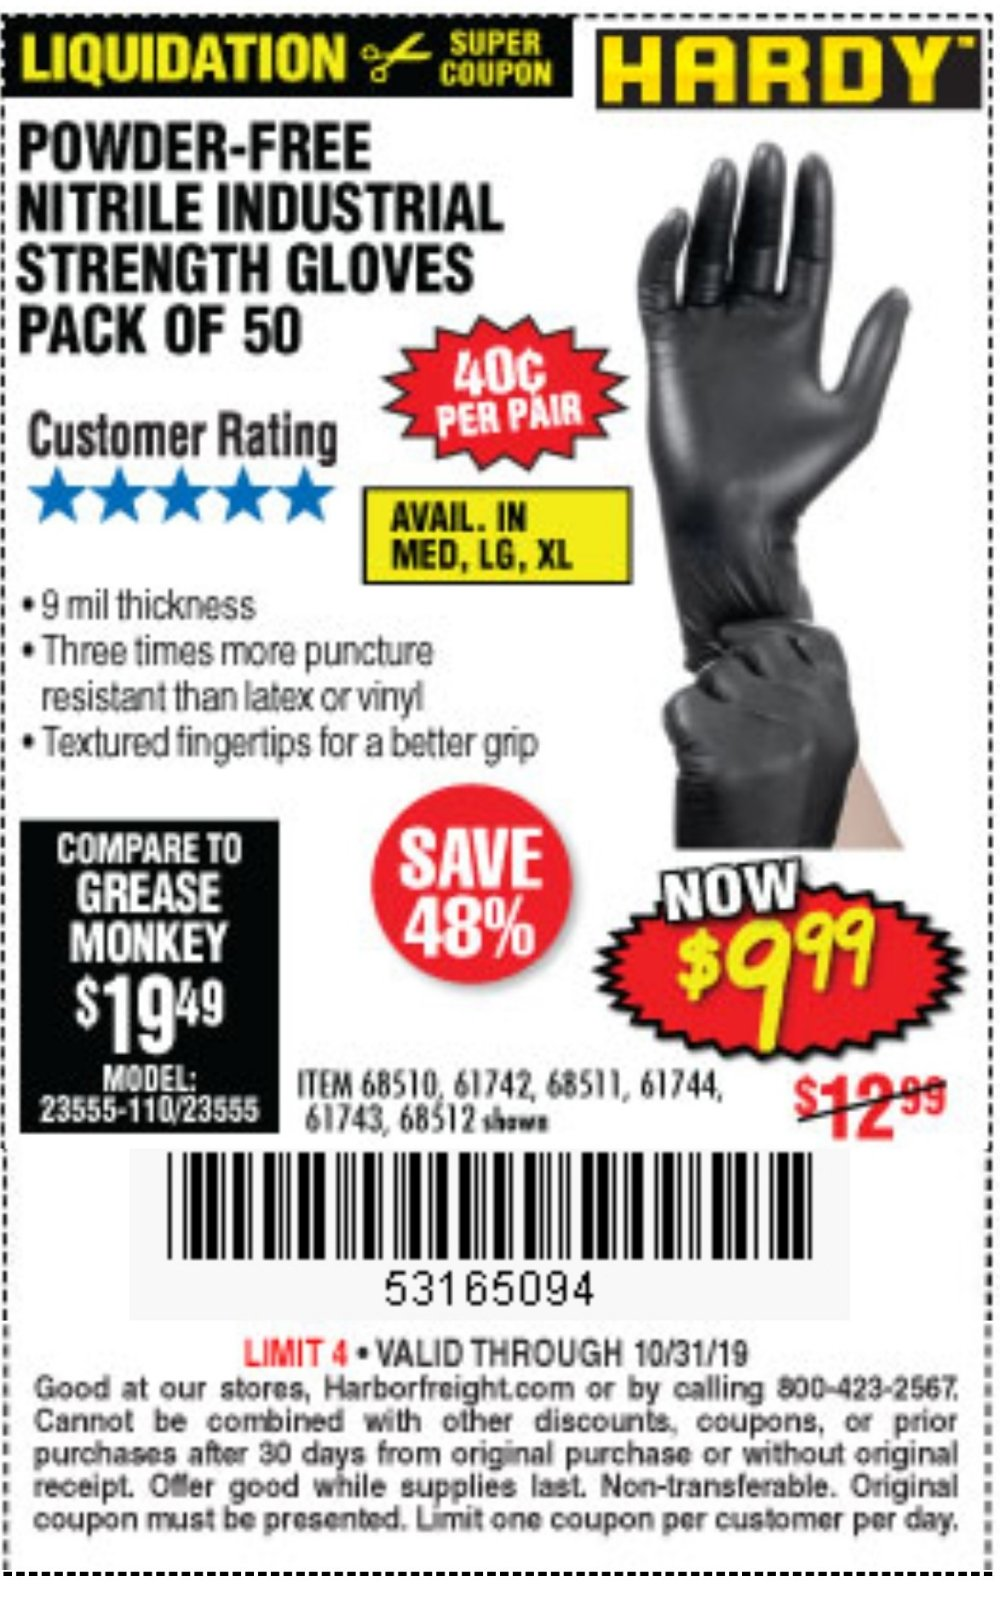 Harbor Freight Coupon, HF Coupons - 9 Mil Nitrile Powder-free Gloves 50 Pc.